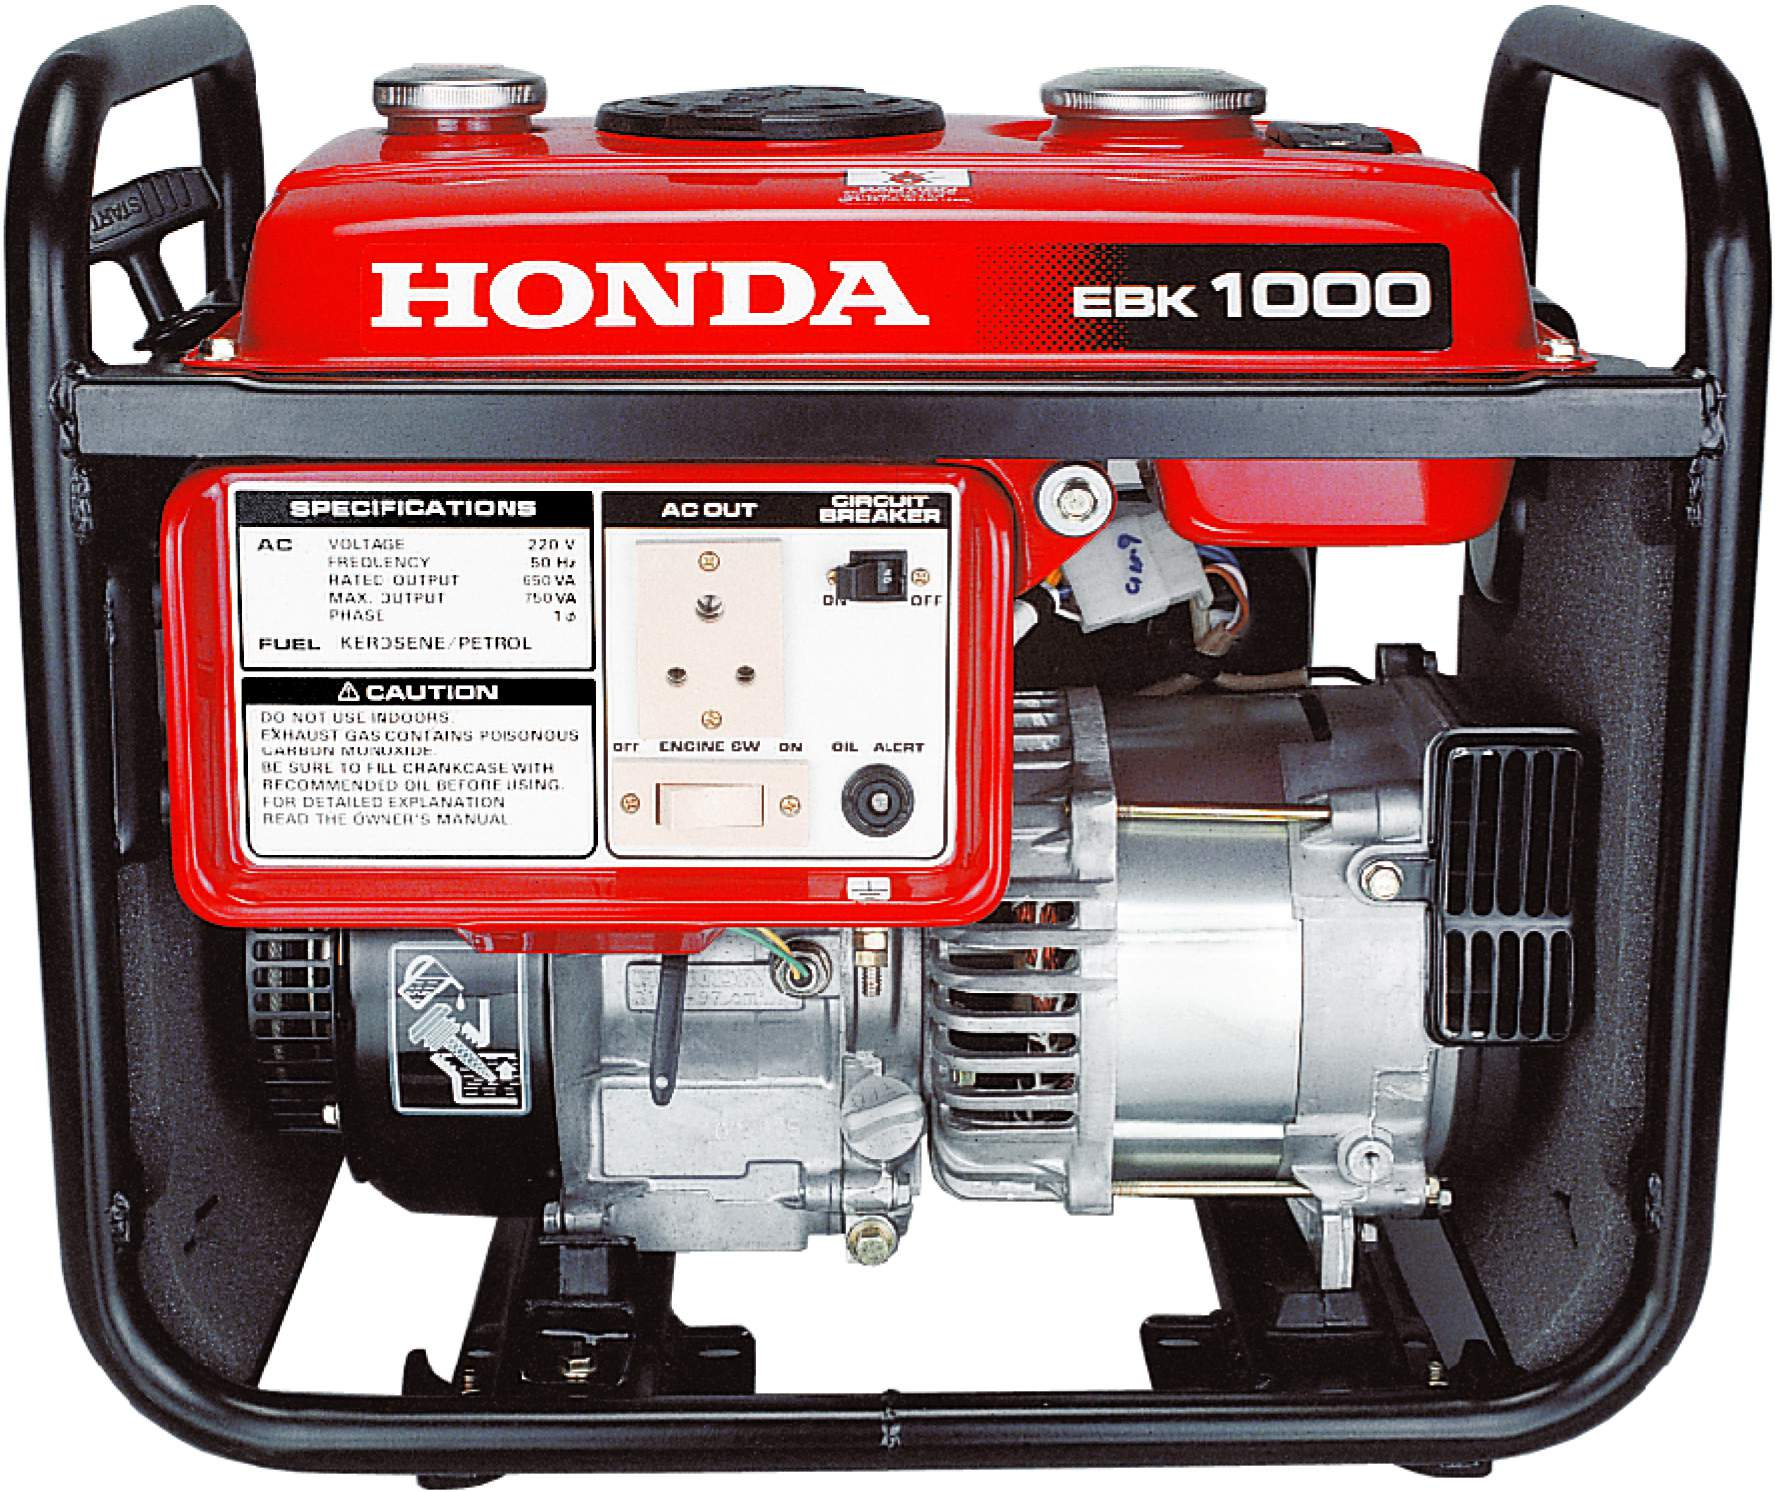 Hevy work generator with little price HONDA PORTABLE GENSETS